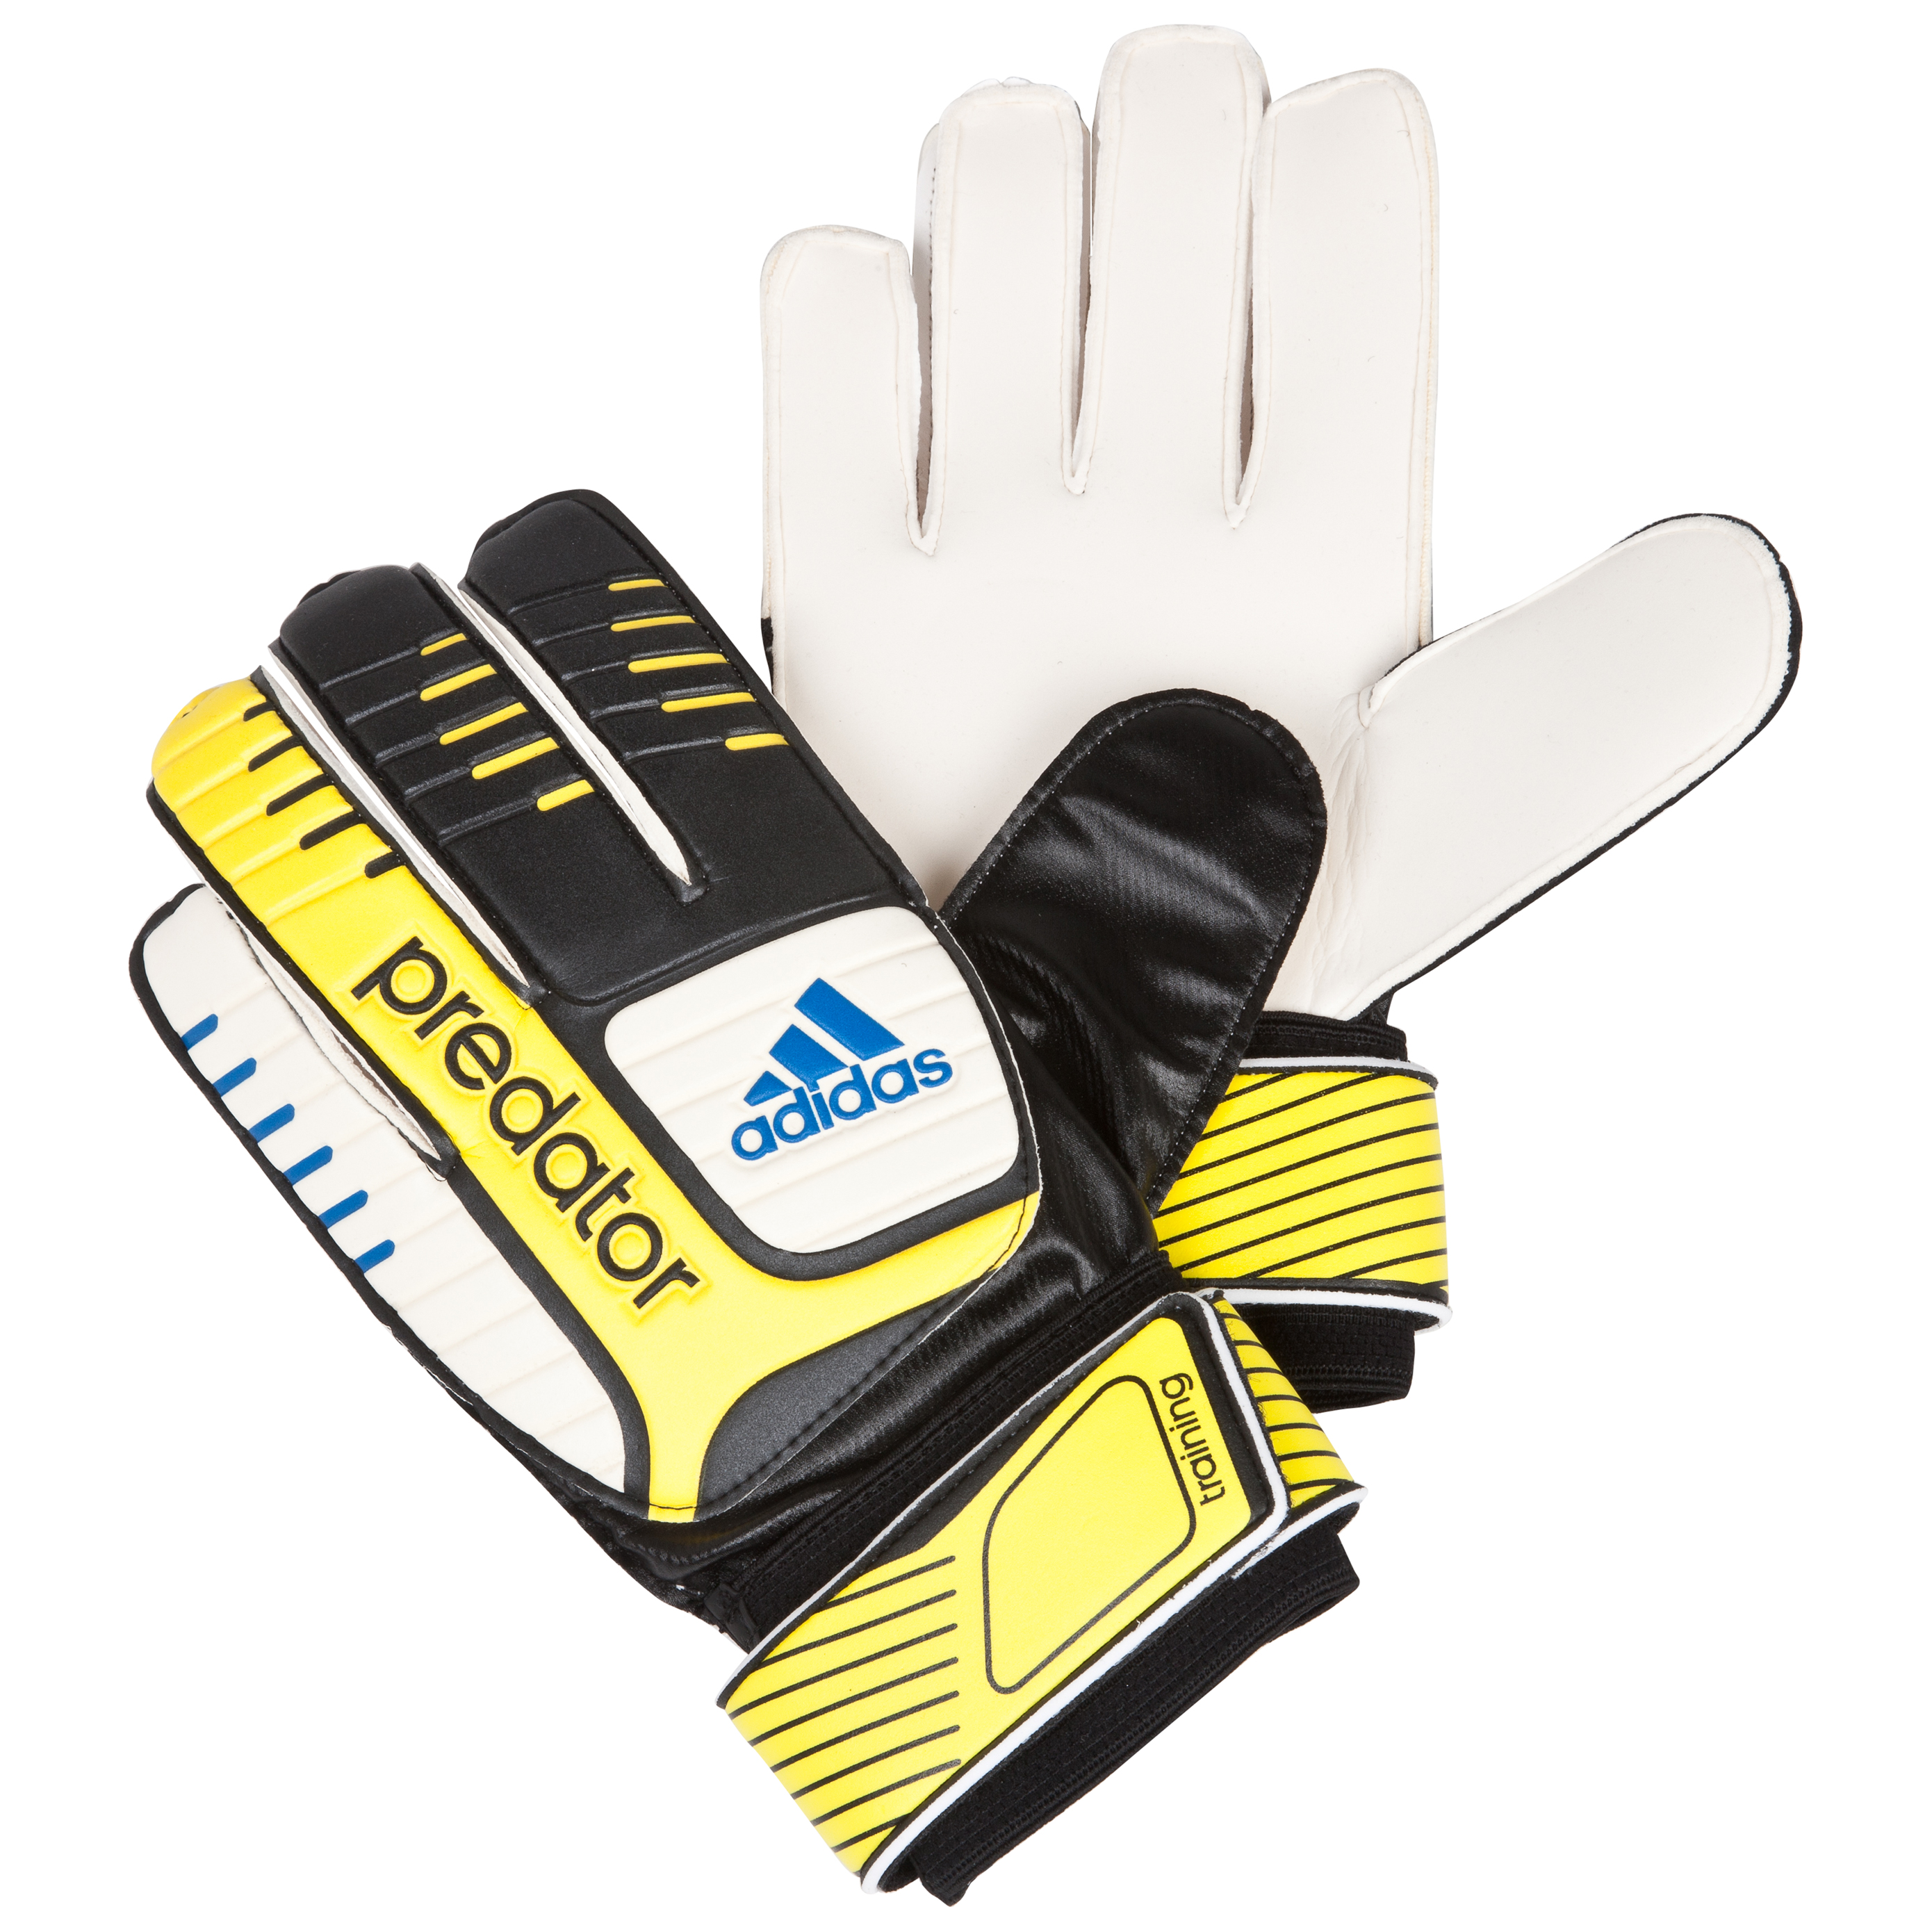 adidas Pred Training Goalkeeper Gloves - Black/White/Vivid Yellow/Prime Blue